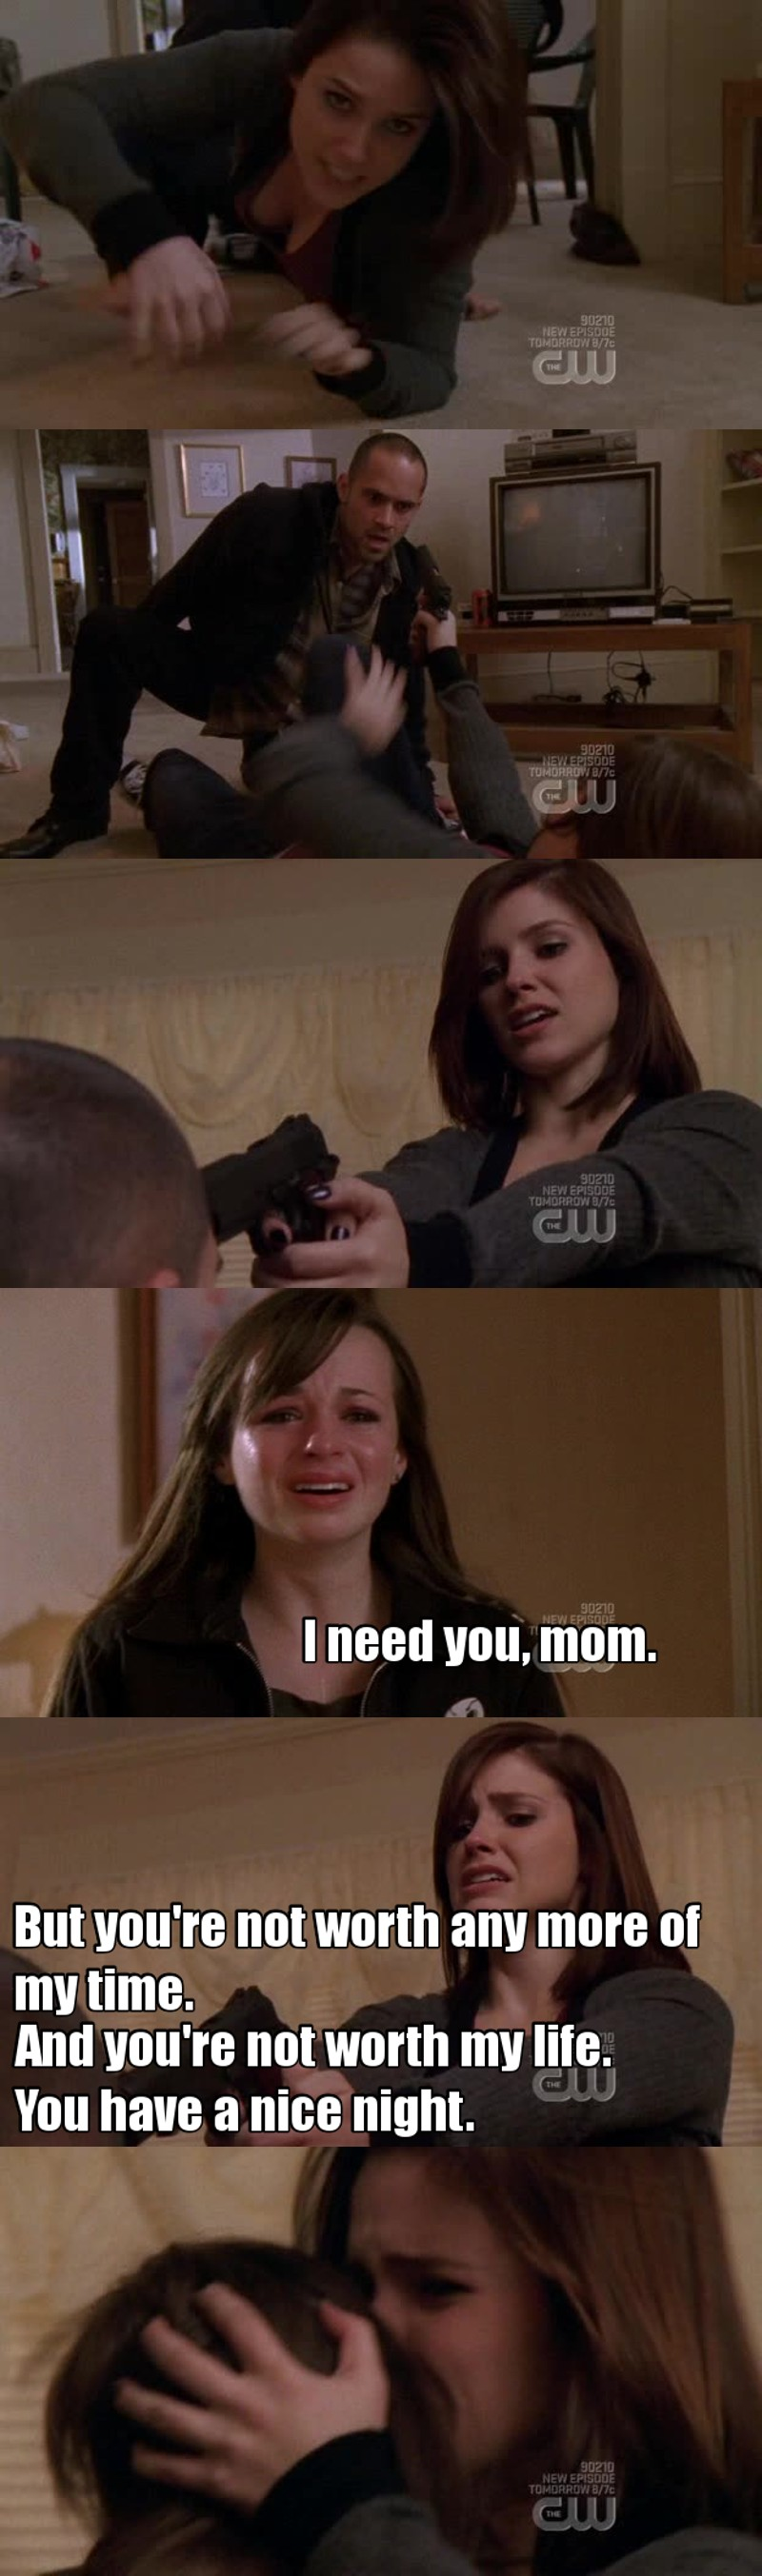 "OH MY GOD BROOKE IS SUCH A BADASS QUEEN, I'M GONNA HAVE TO CALL HER ""MOM"" TOO !"